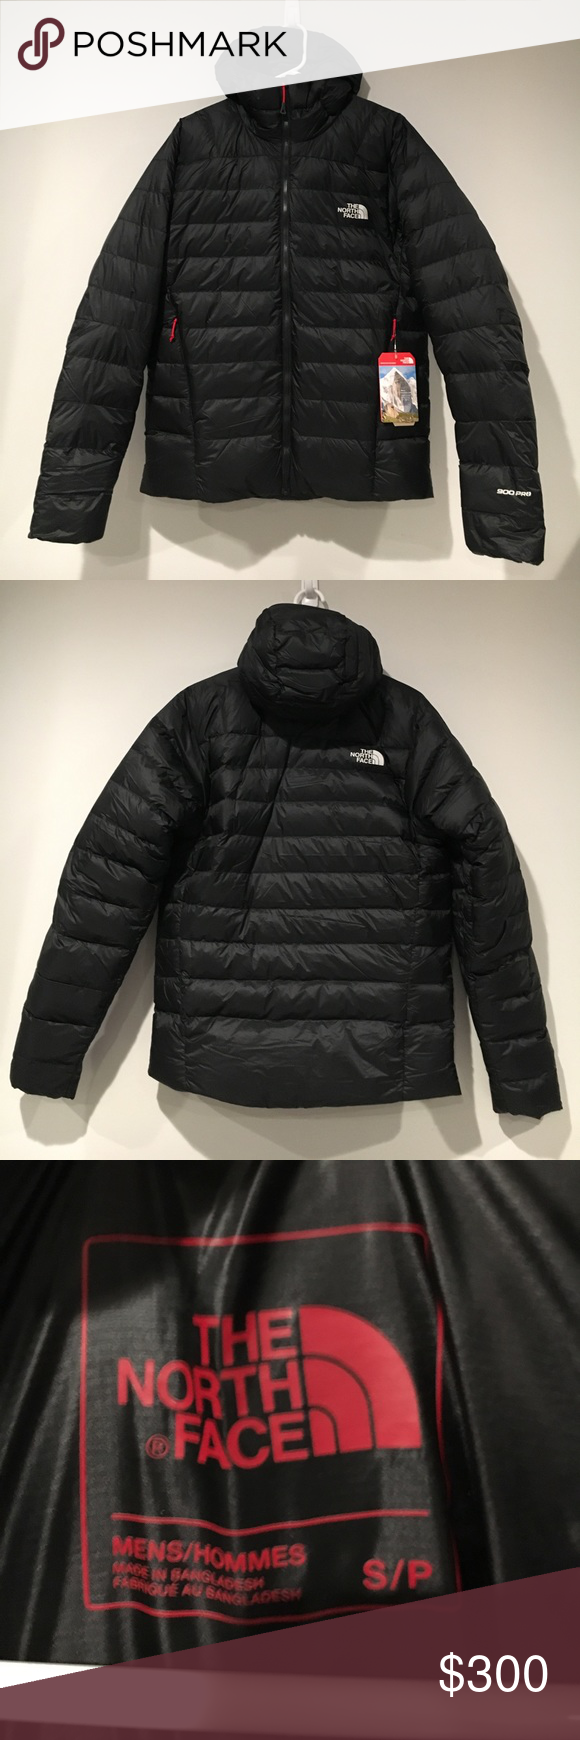 859d60c17de1 The North Face Super Diez Hooded Jacket New With Tags Black S (Men s) North  Face Jackets   Coats Puffers